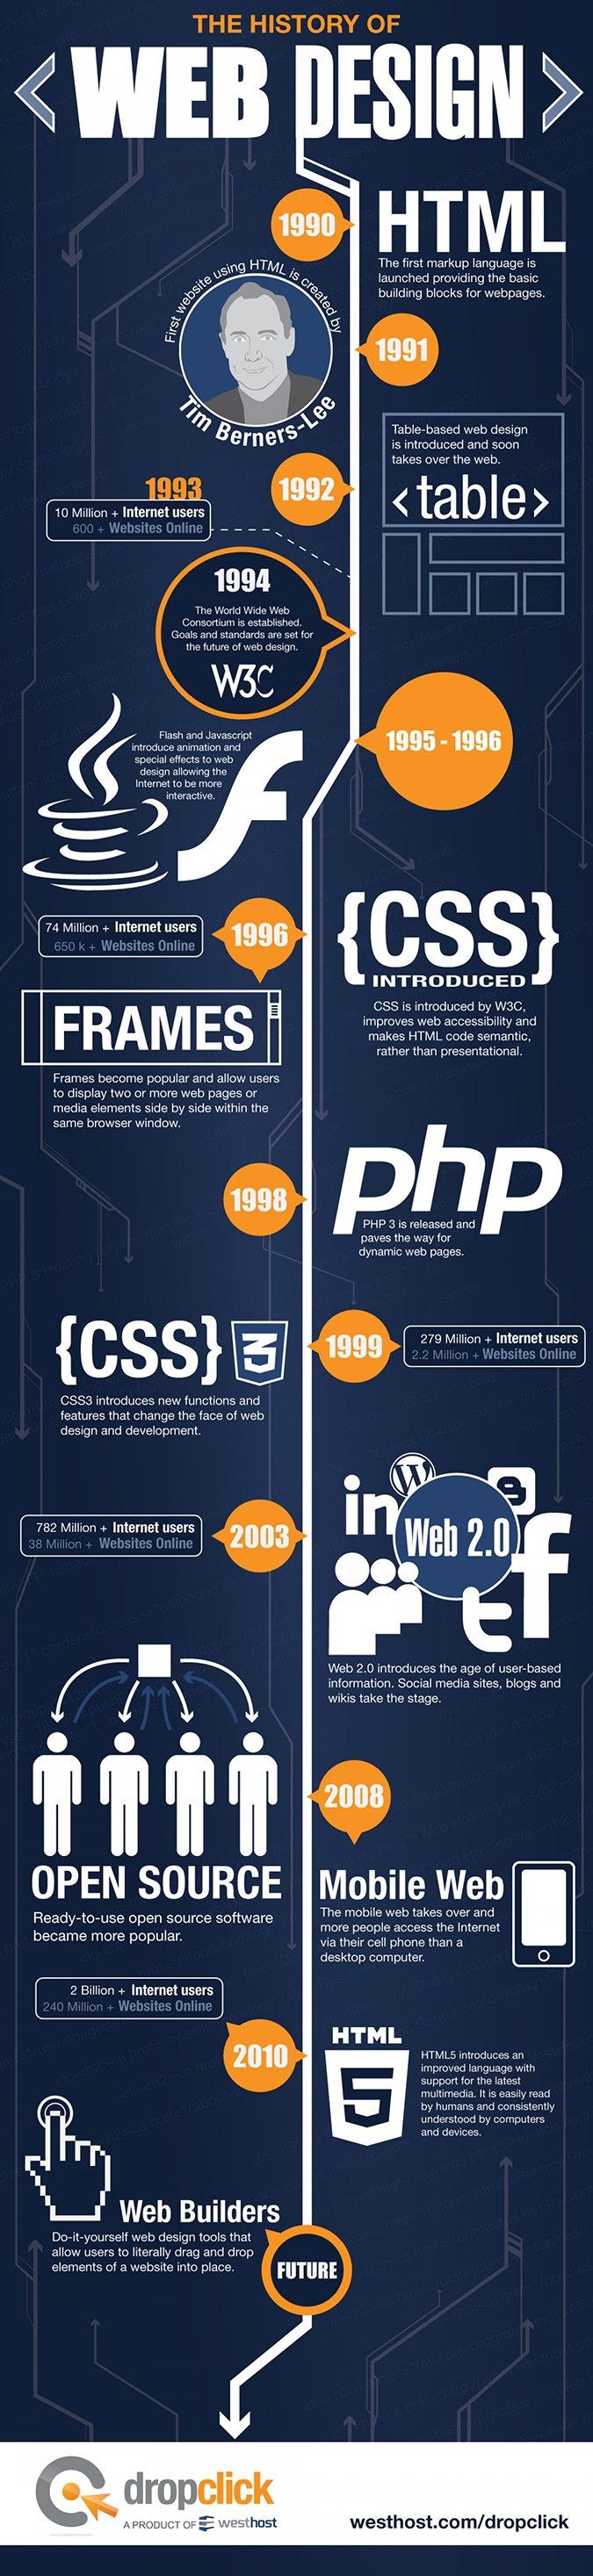 The history of webdesign